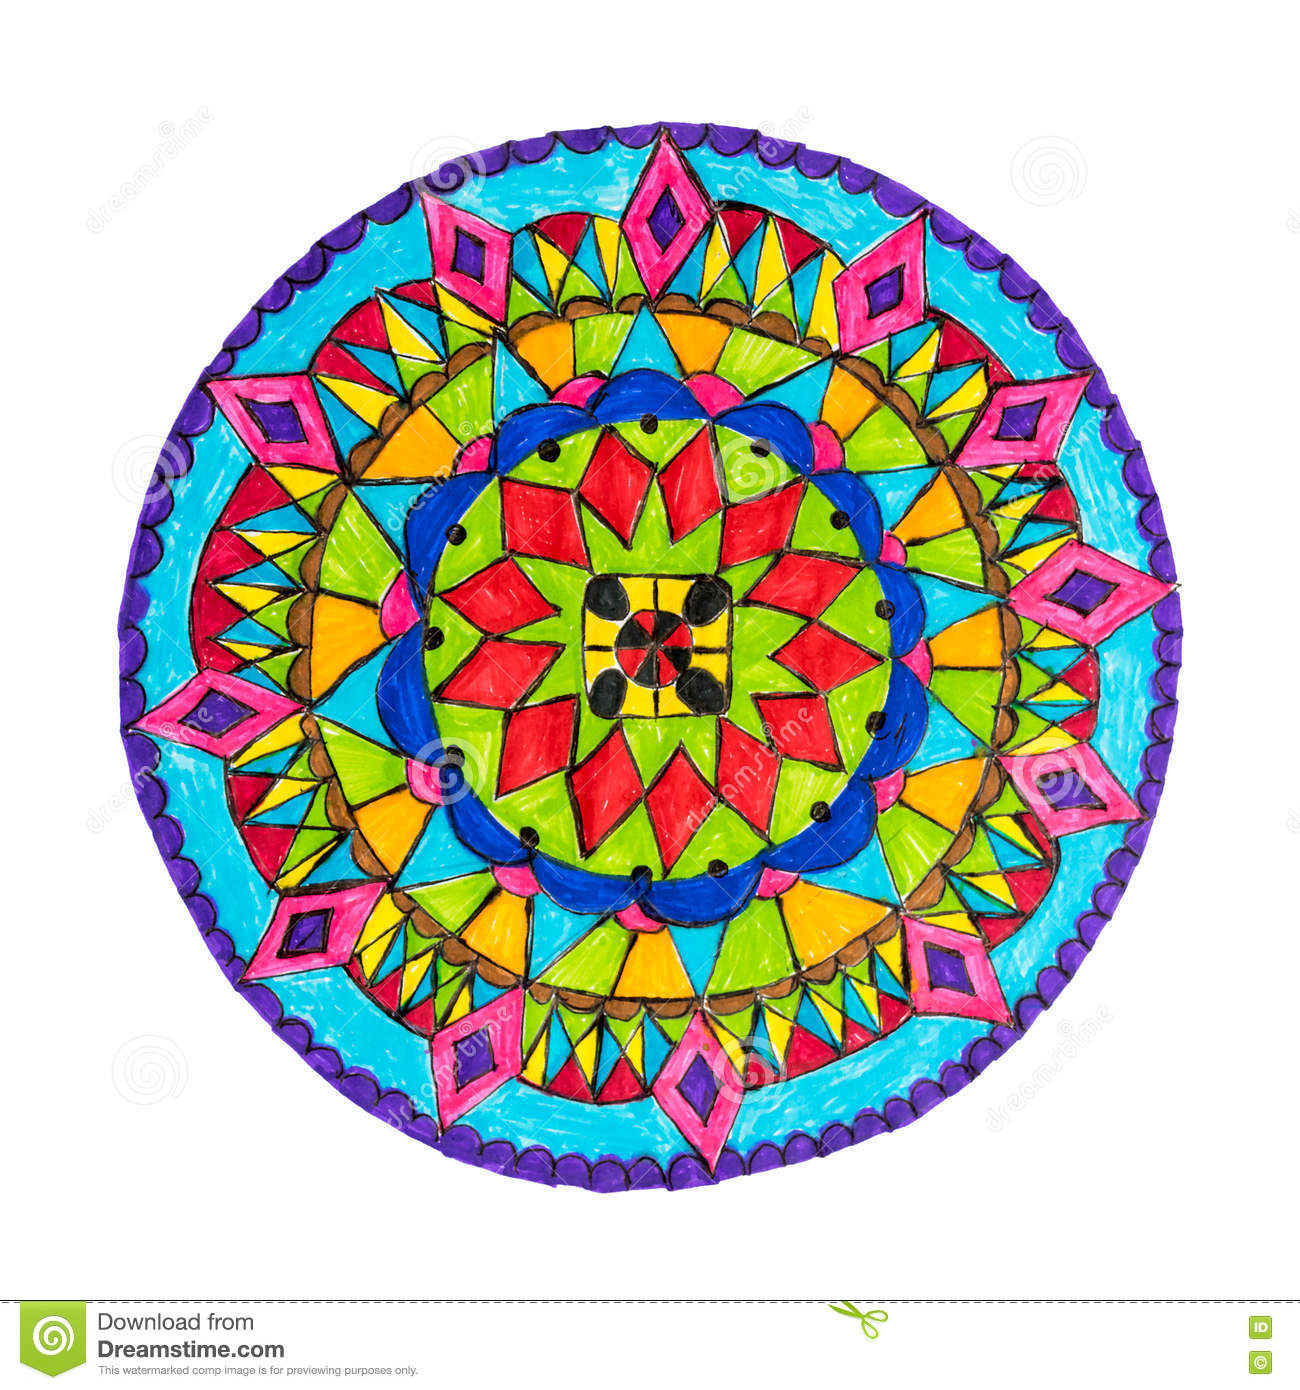 Colorful decorative hand drawn mandala pattern